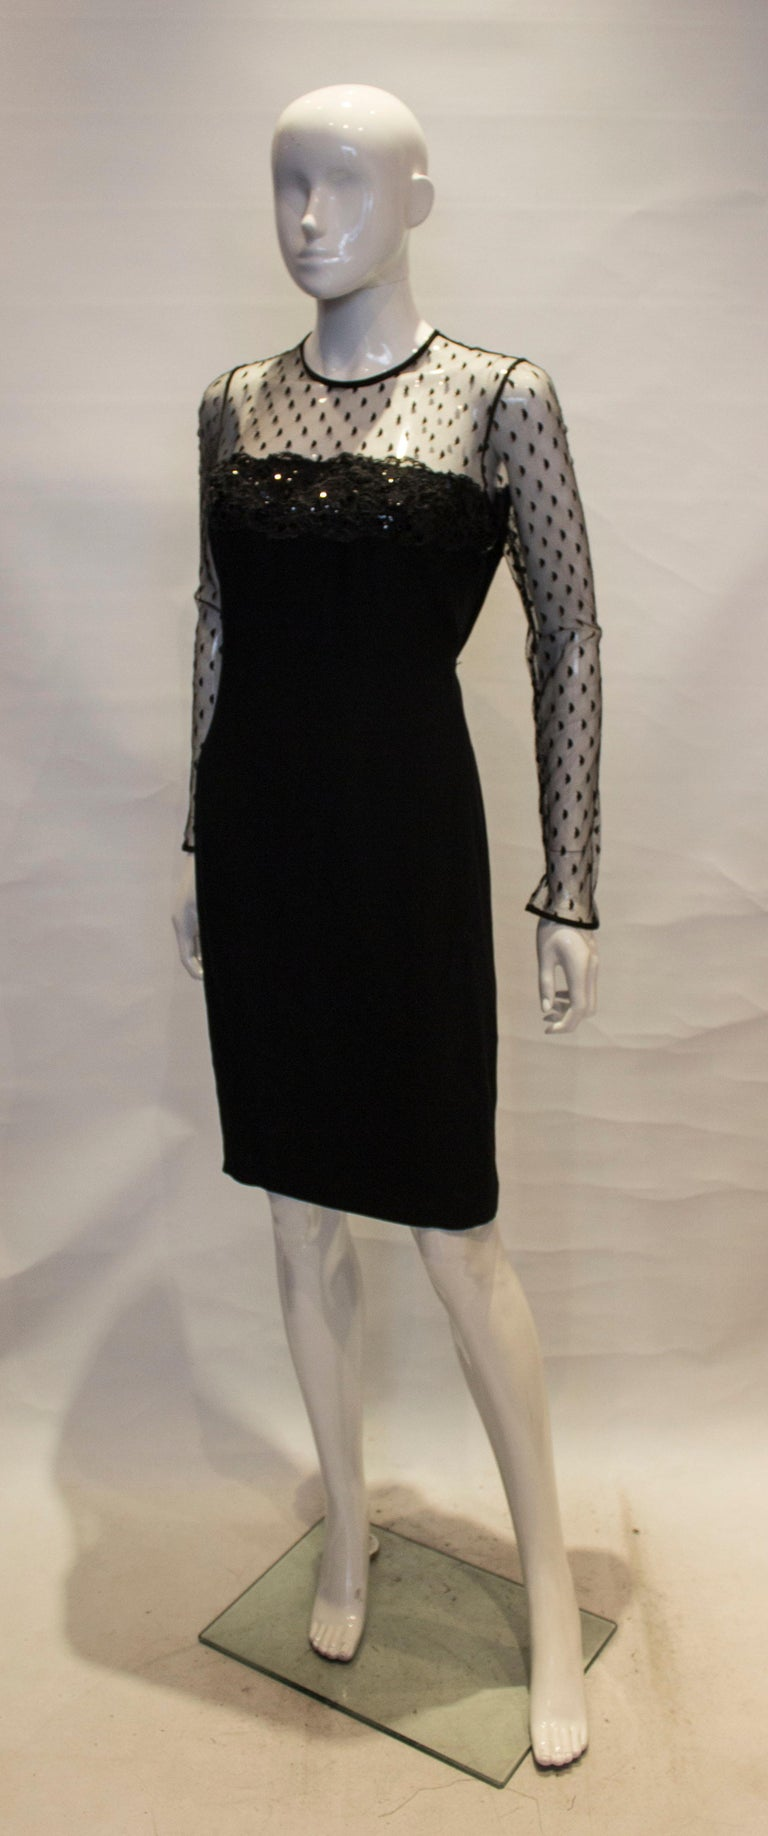 Black Cocktail dress by Adrienne Vittadini In Good Condition For Sale In London, GB